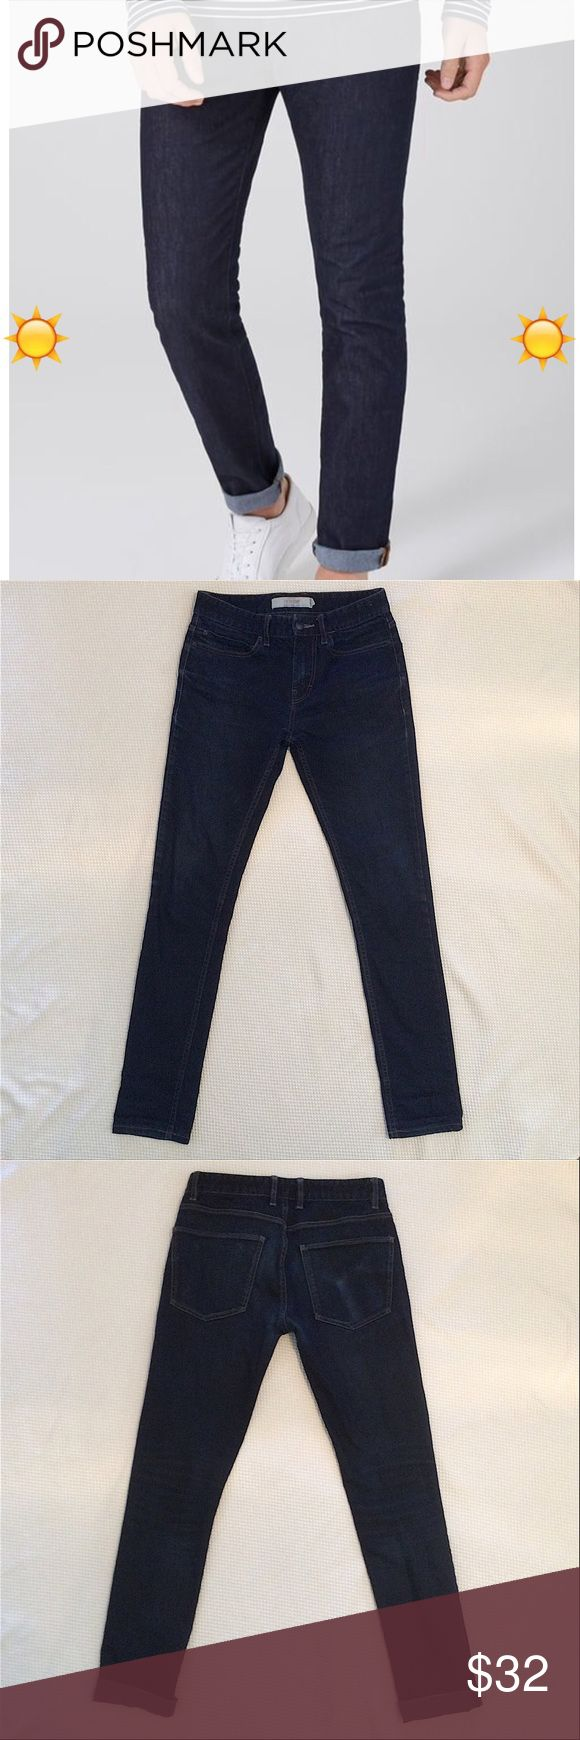 "Men's Navy Cuffed Stretch Skinny Jeans (30L) Great condition jeans - no holes or rips. There is a ""wallet outline"" on back pocket. Inseam with cuffs - 29"". Inseam without cuffs - 32"". Top of waist laying flat -15"". Topman Jeans Slim Straight"